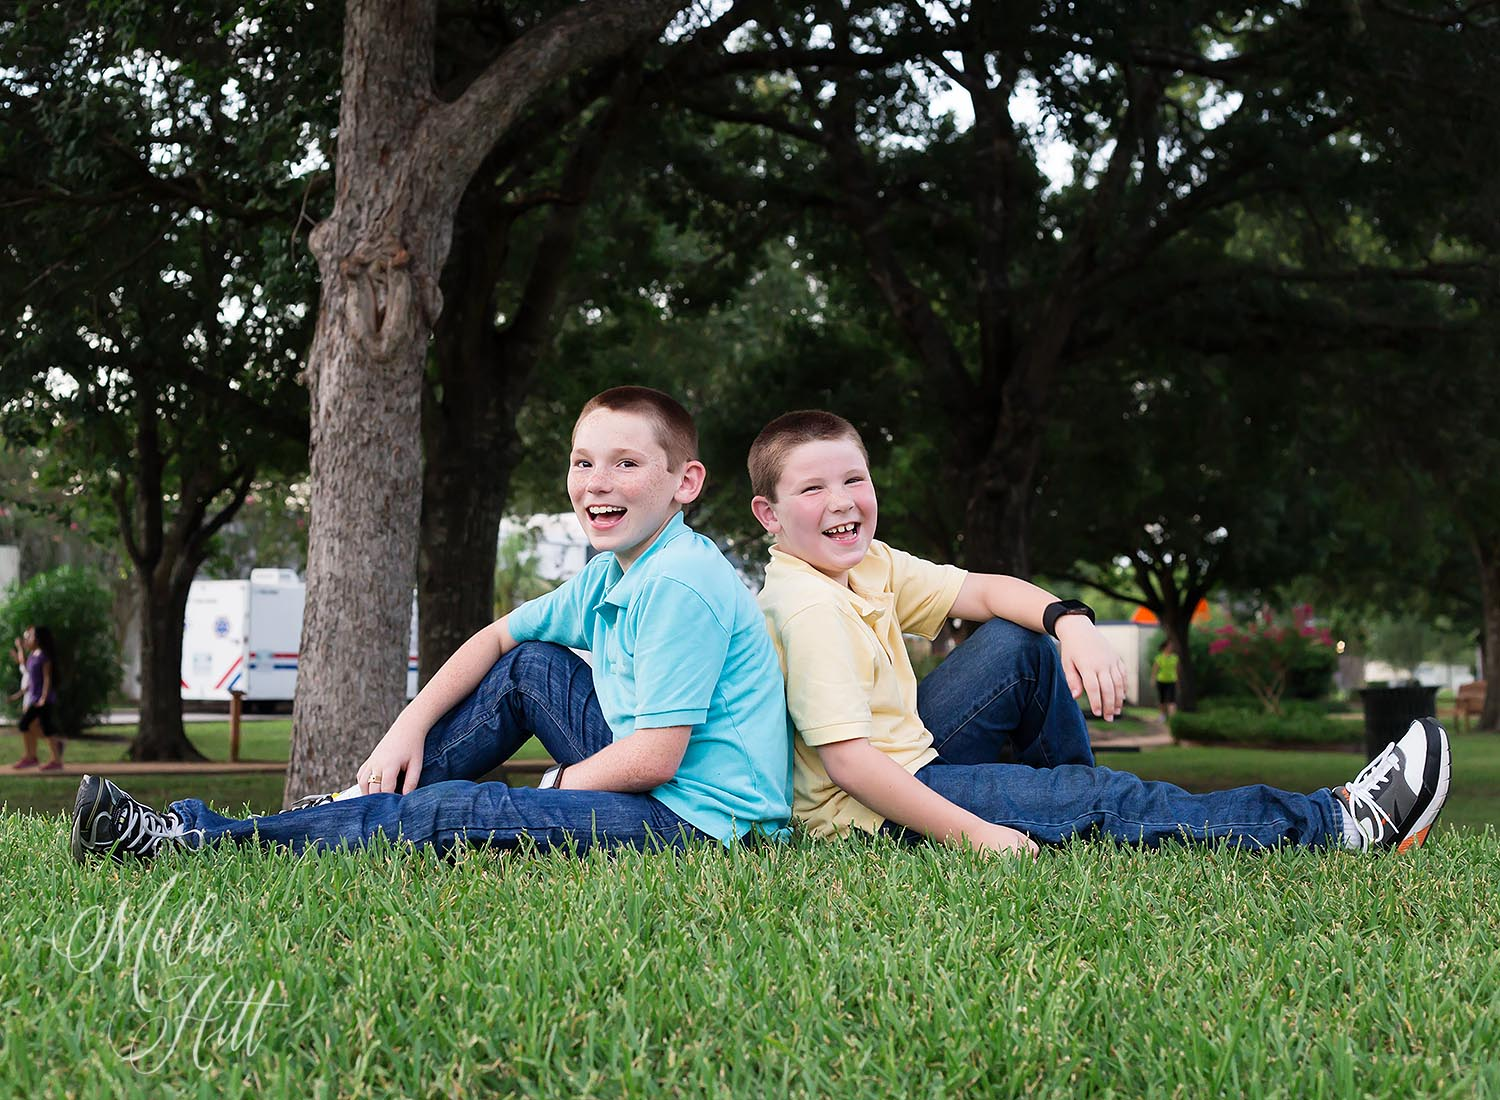 Two brothers laugh together on a grassy hill